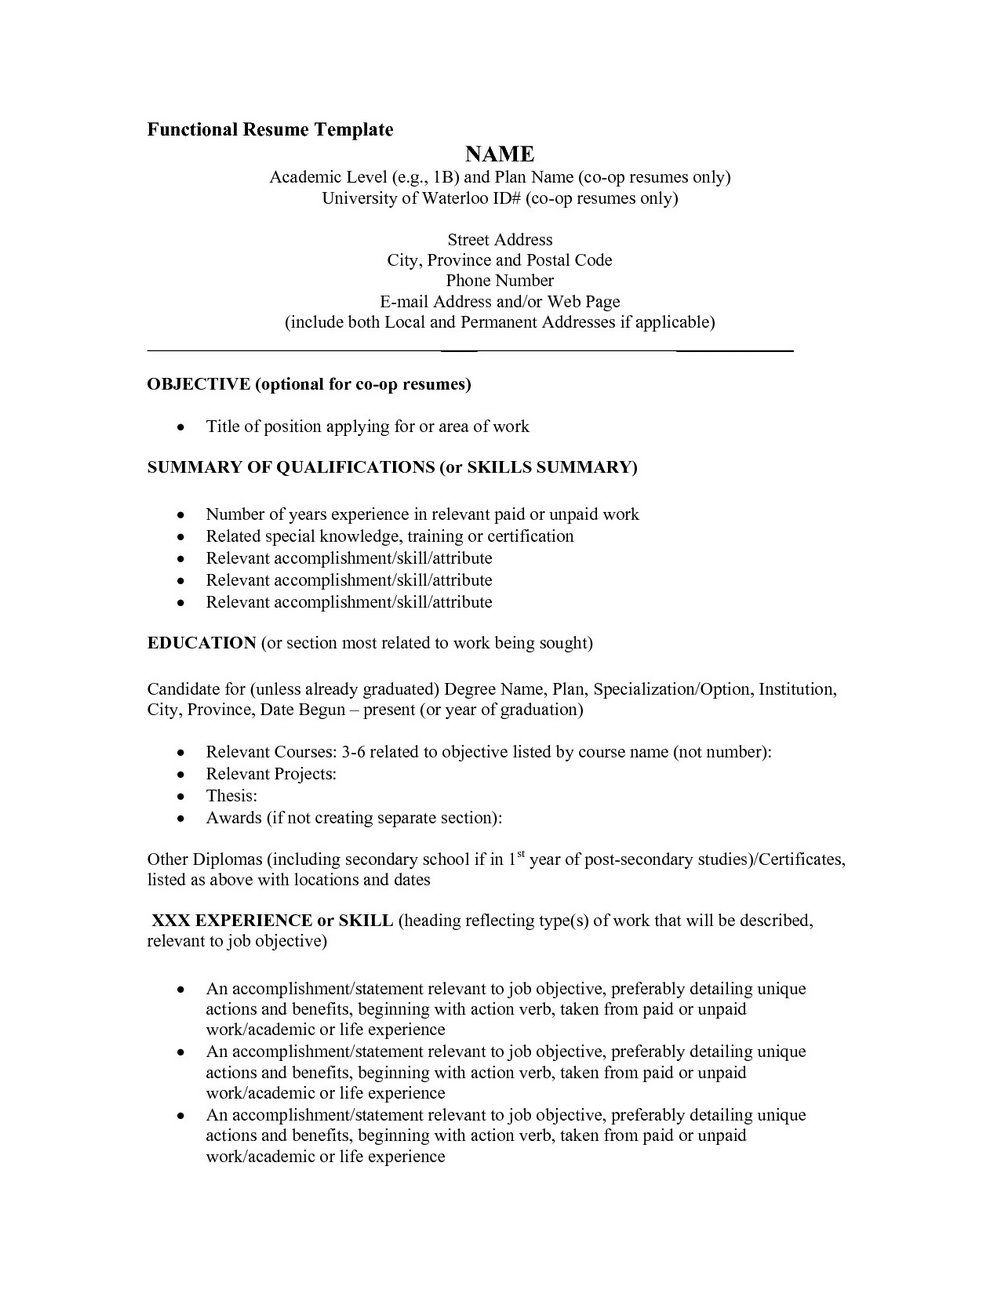 Resume Format Free Download For Mba Fresher